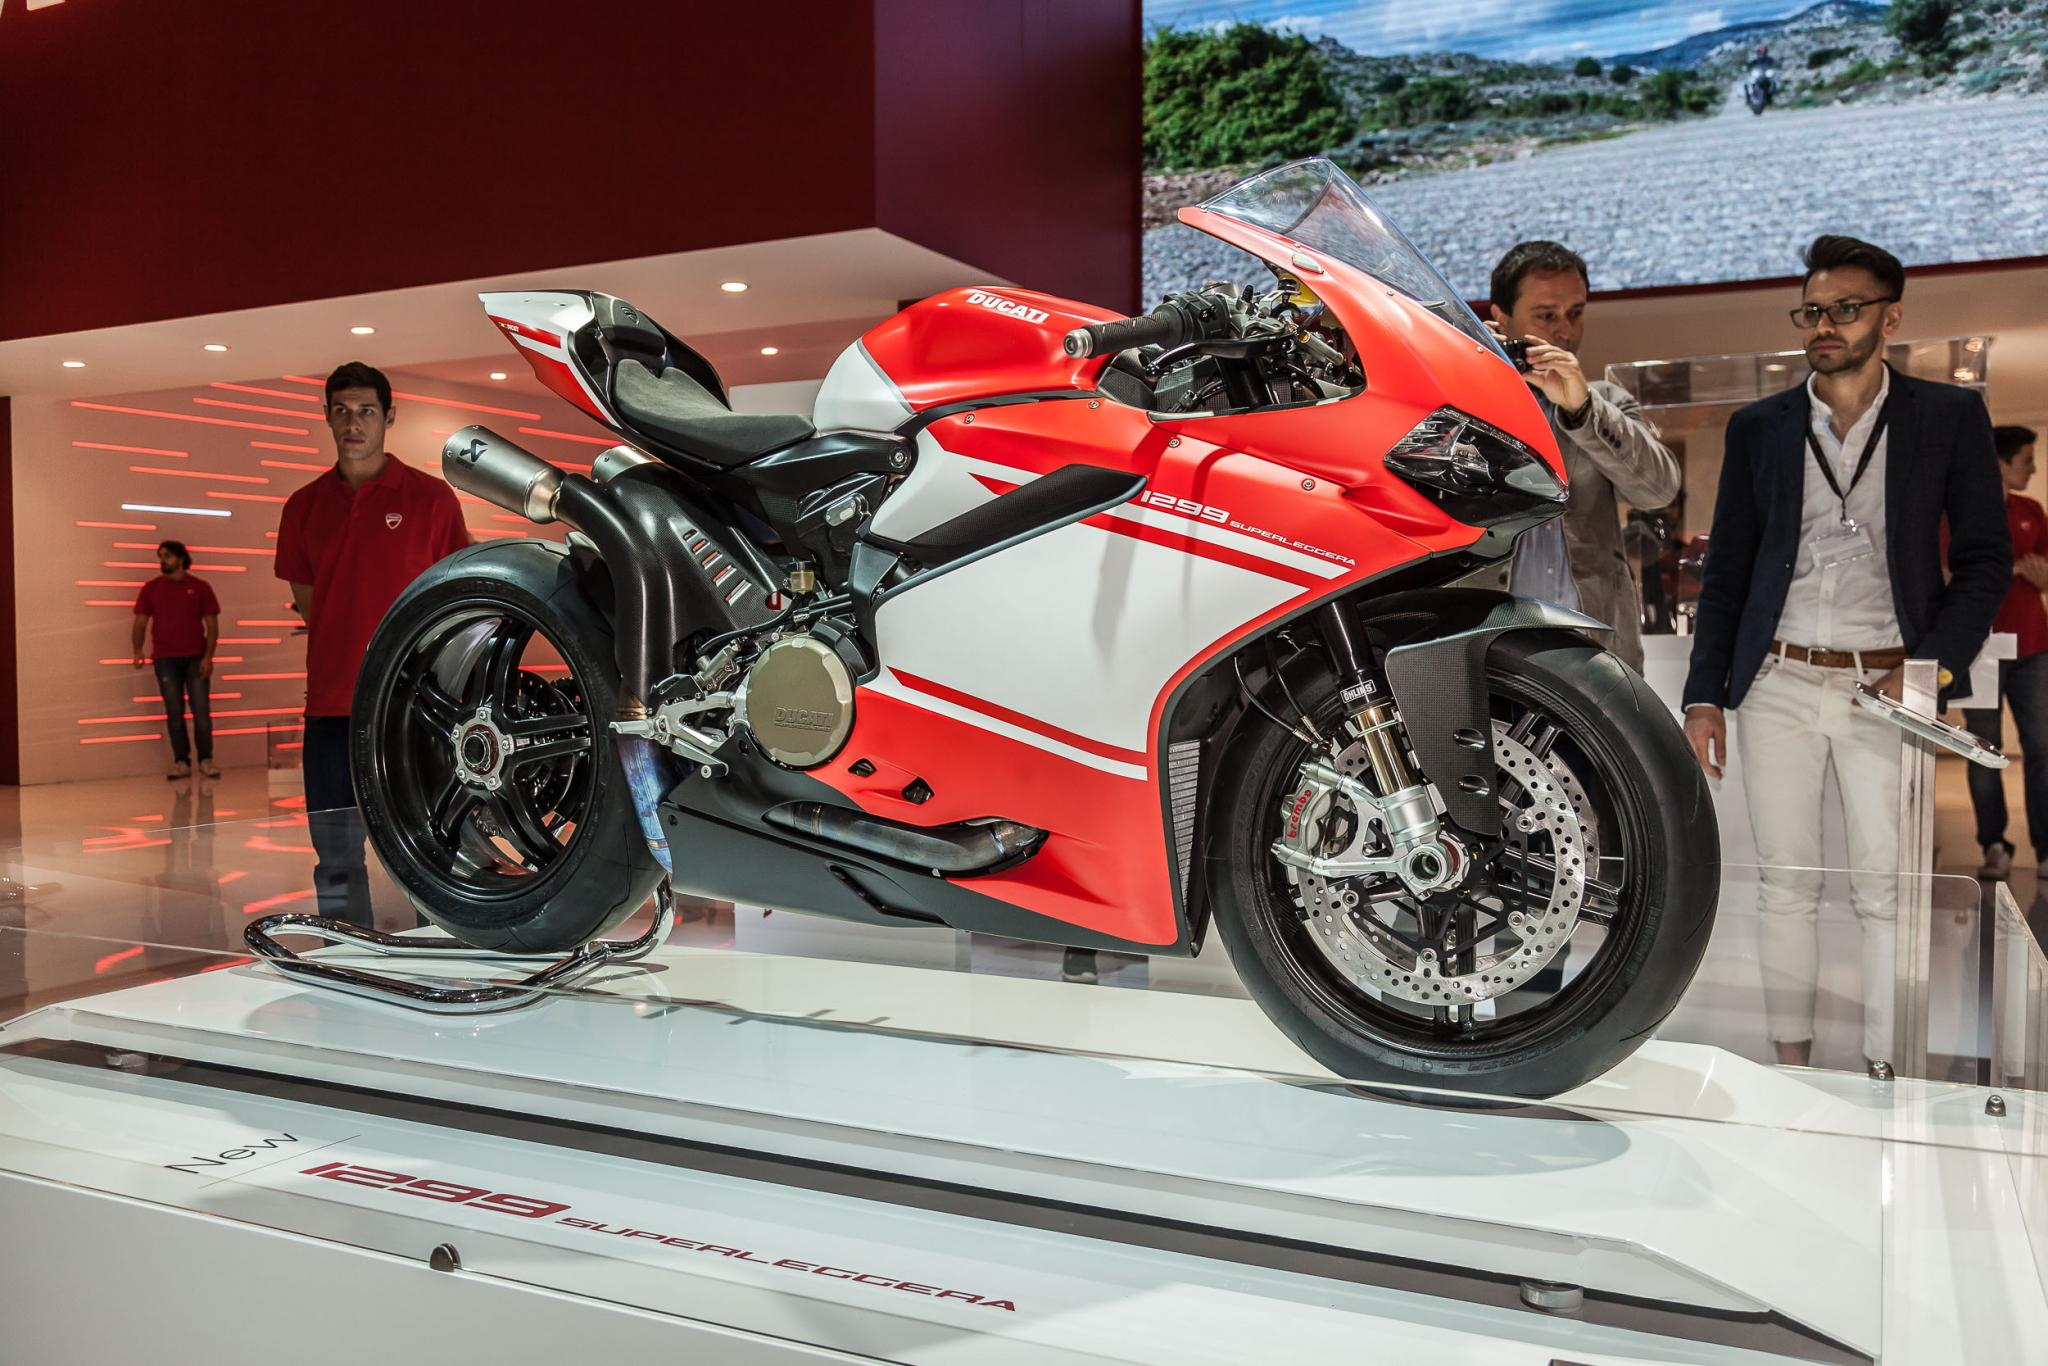 Ducati 1299 Superleggera 2017 - Modellnews